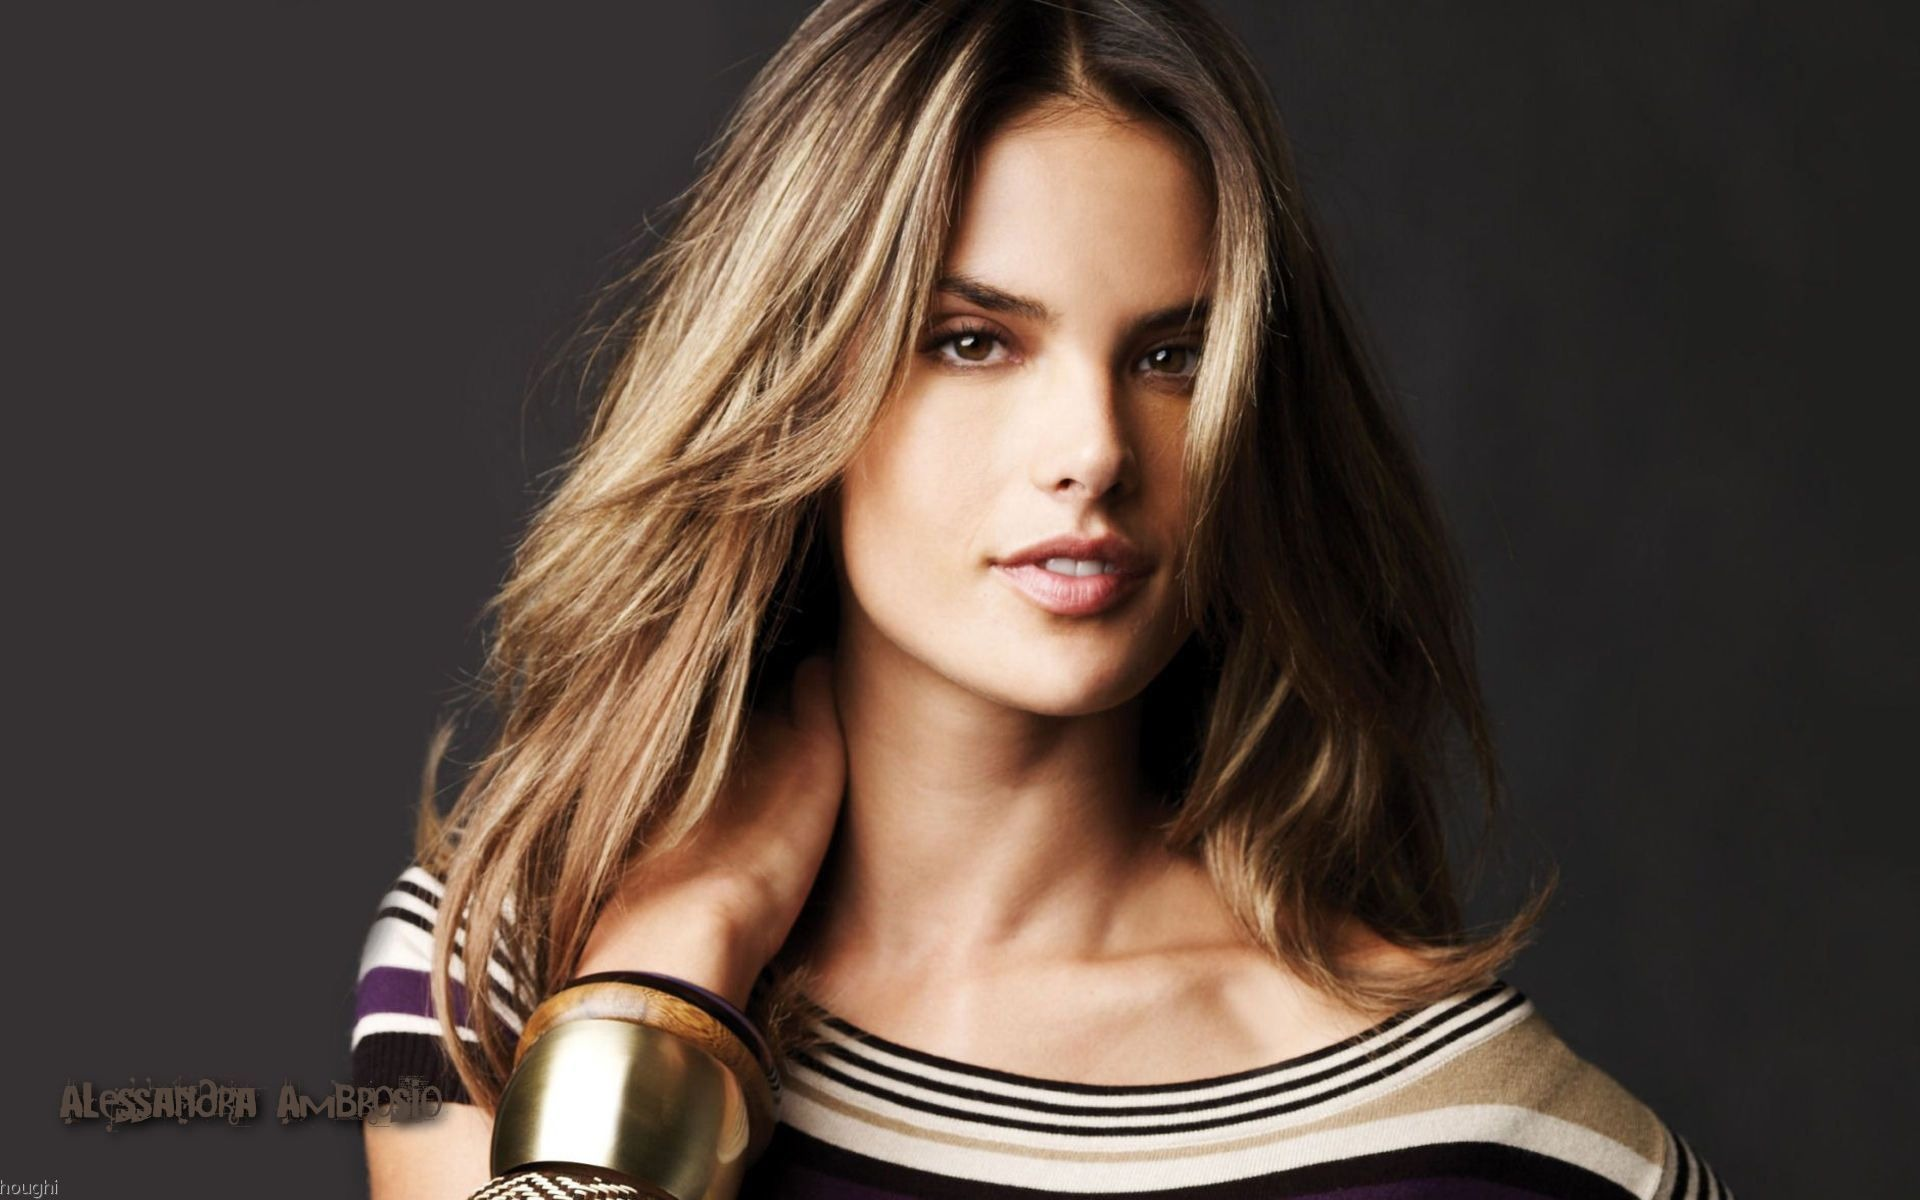 Alessandra Ambrosio #098 - 1920x1200 Wallpapers Pictures Photos Images